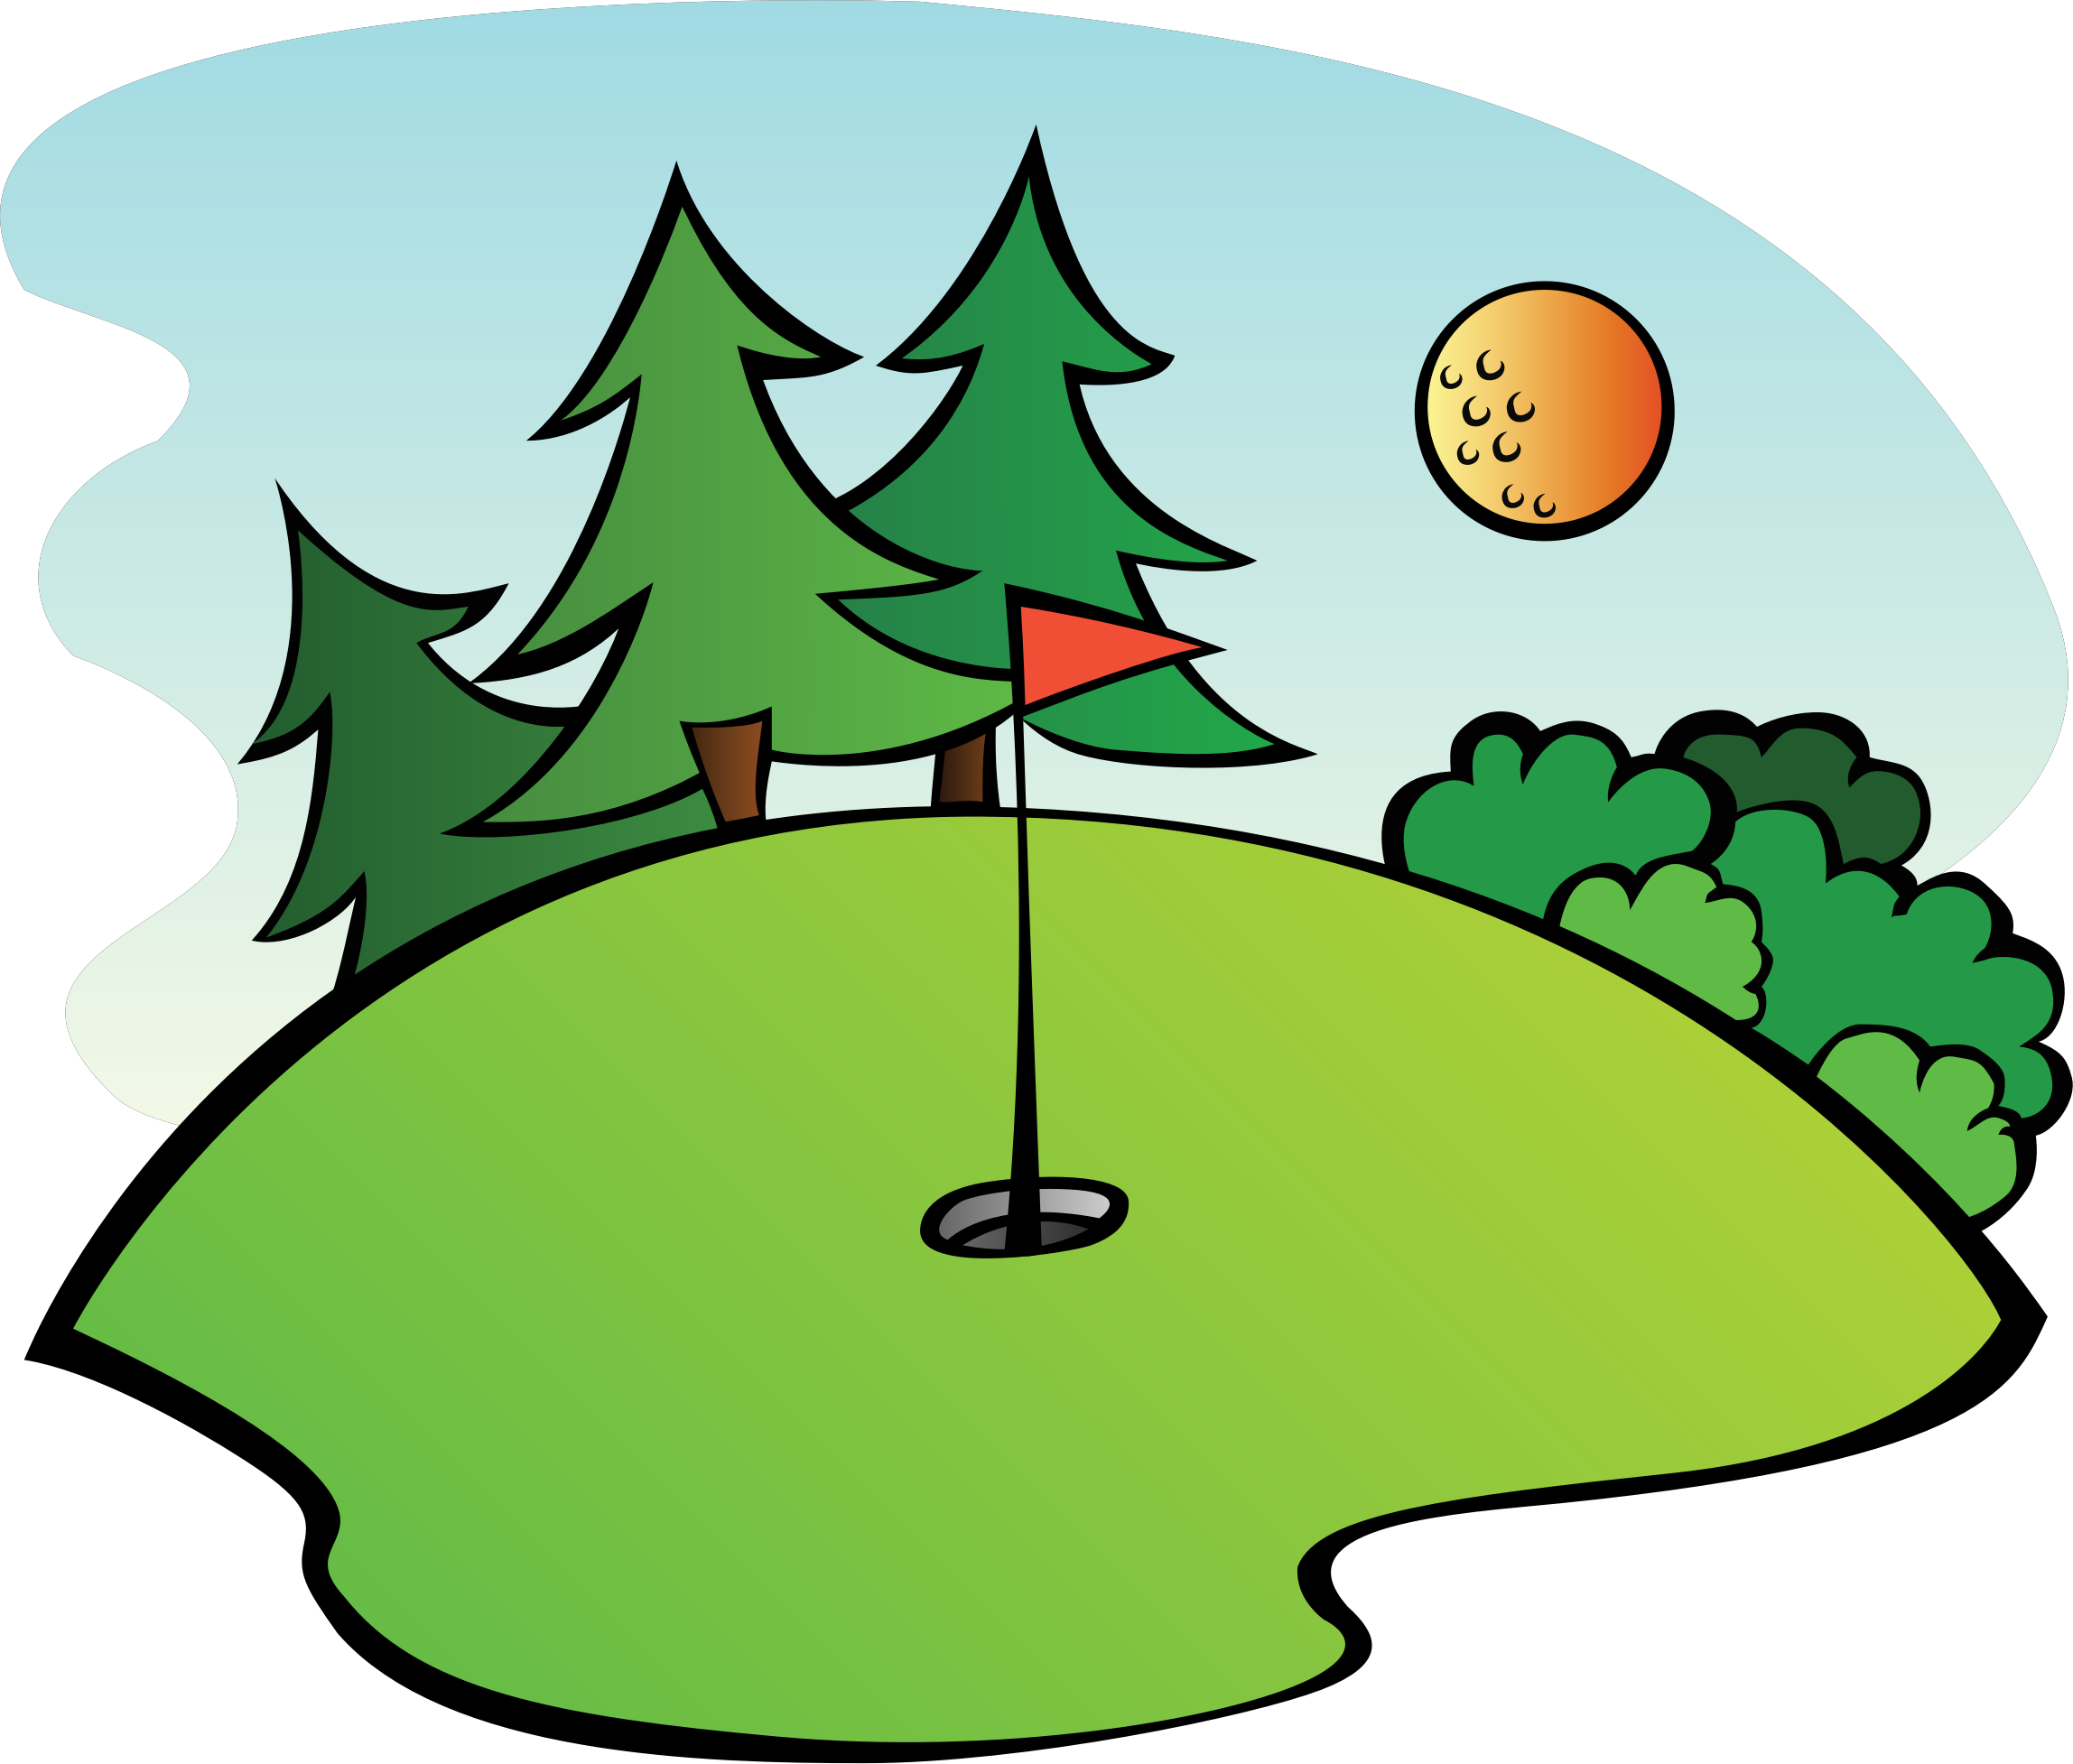 Course icons png free. Golf clipart golf scene